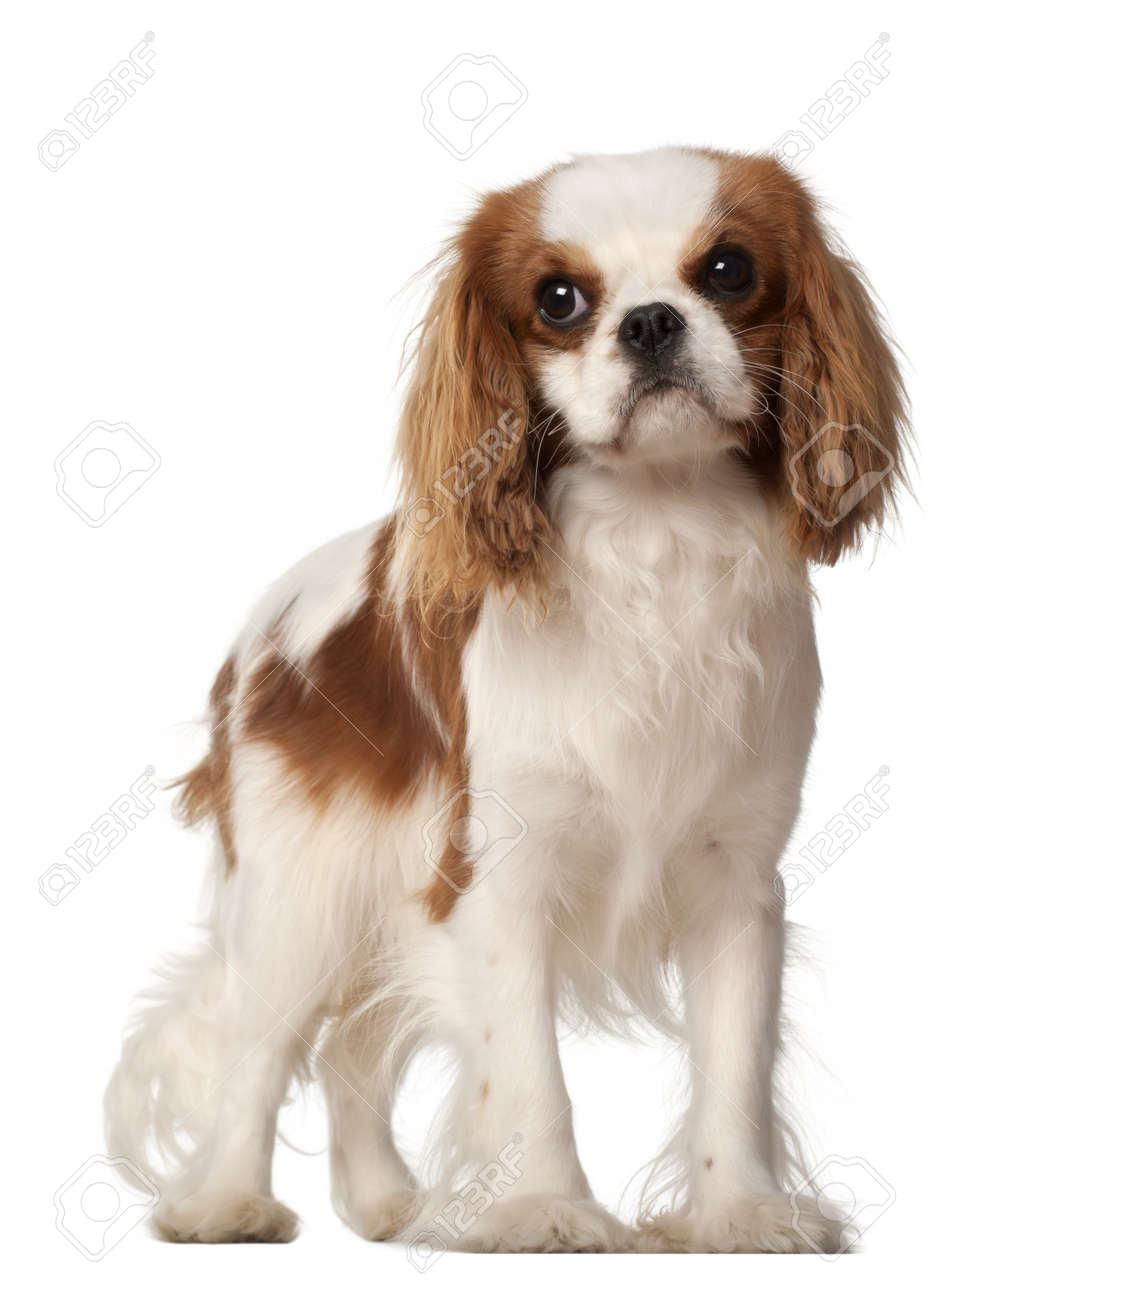 cavalier king charles spaniel 10 months old standing against